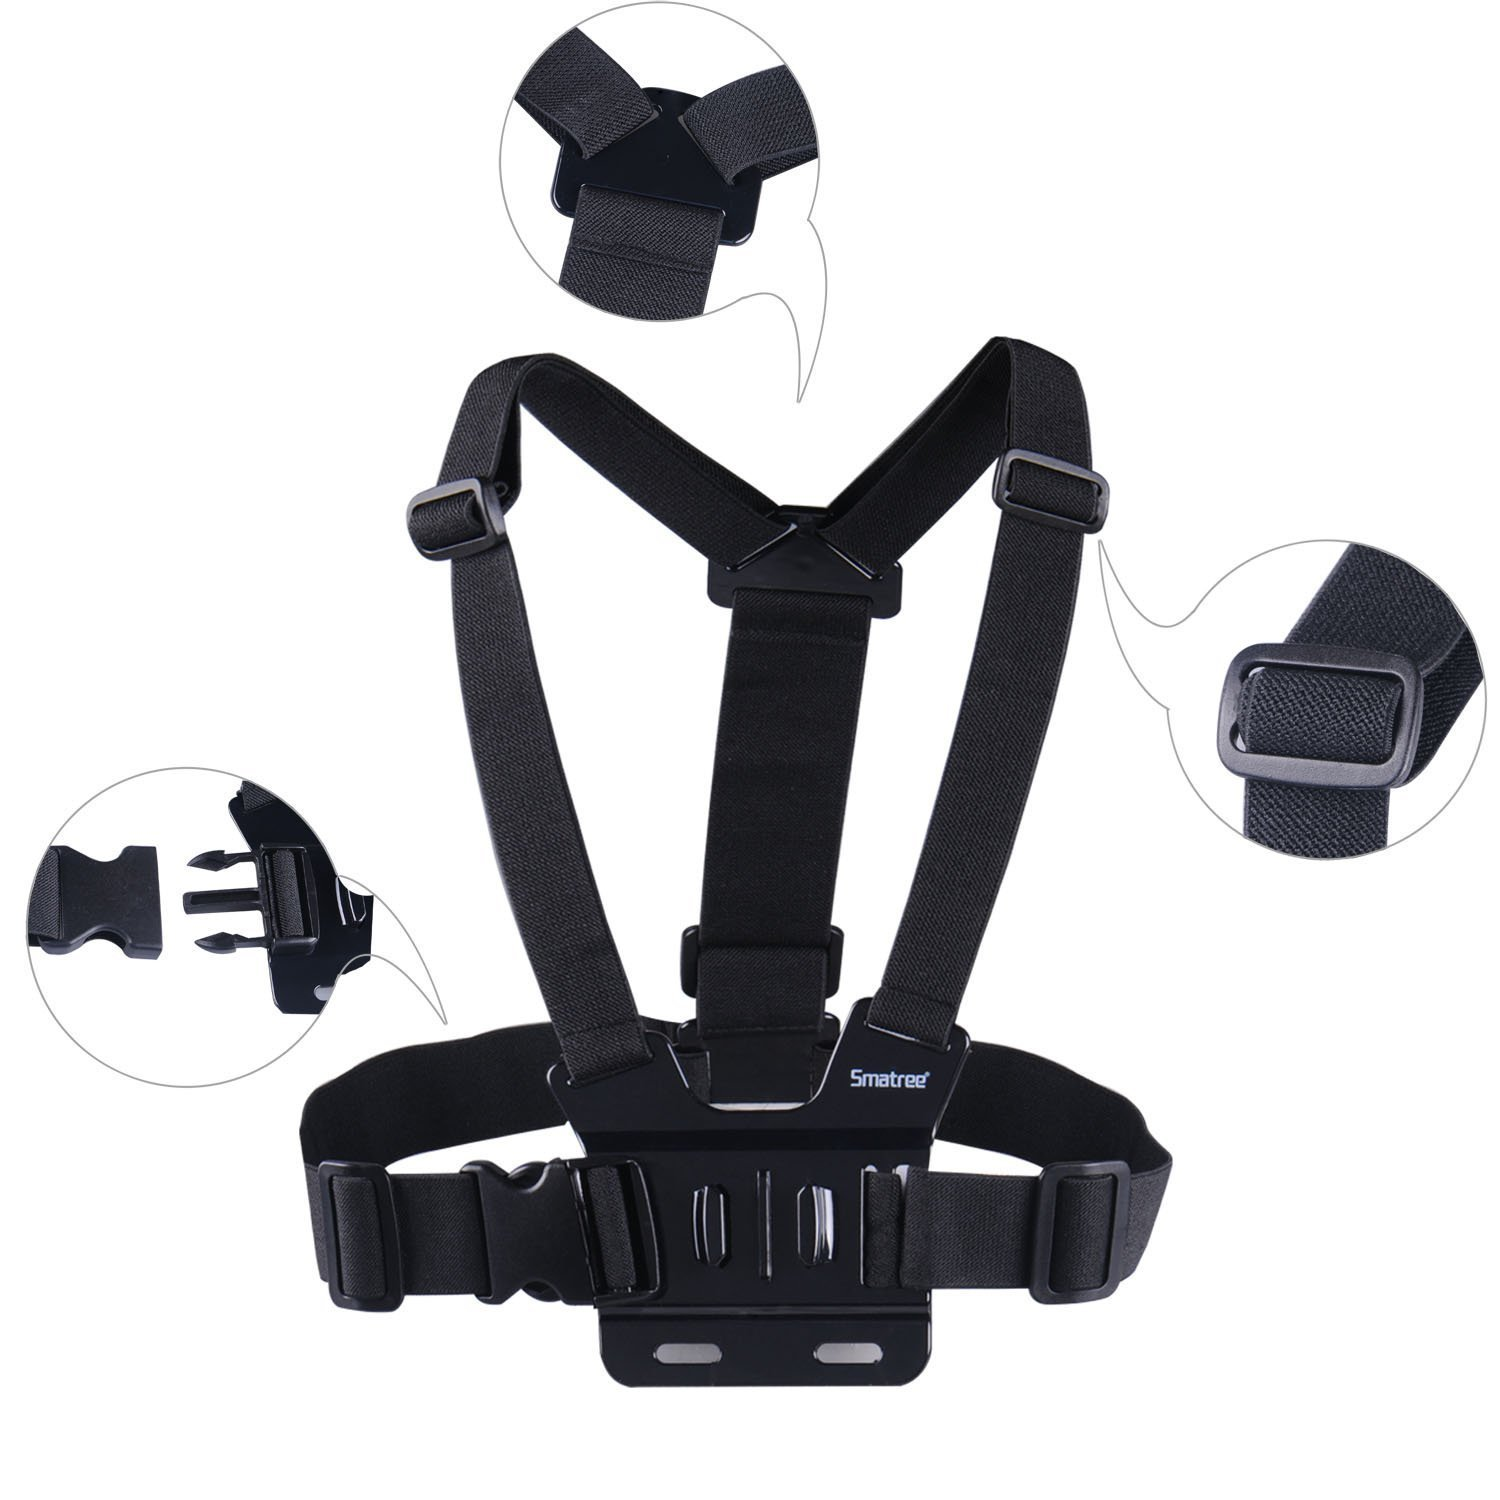 Smatree Chest Mount for Action camera